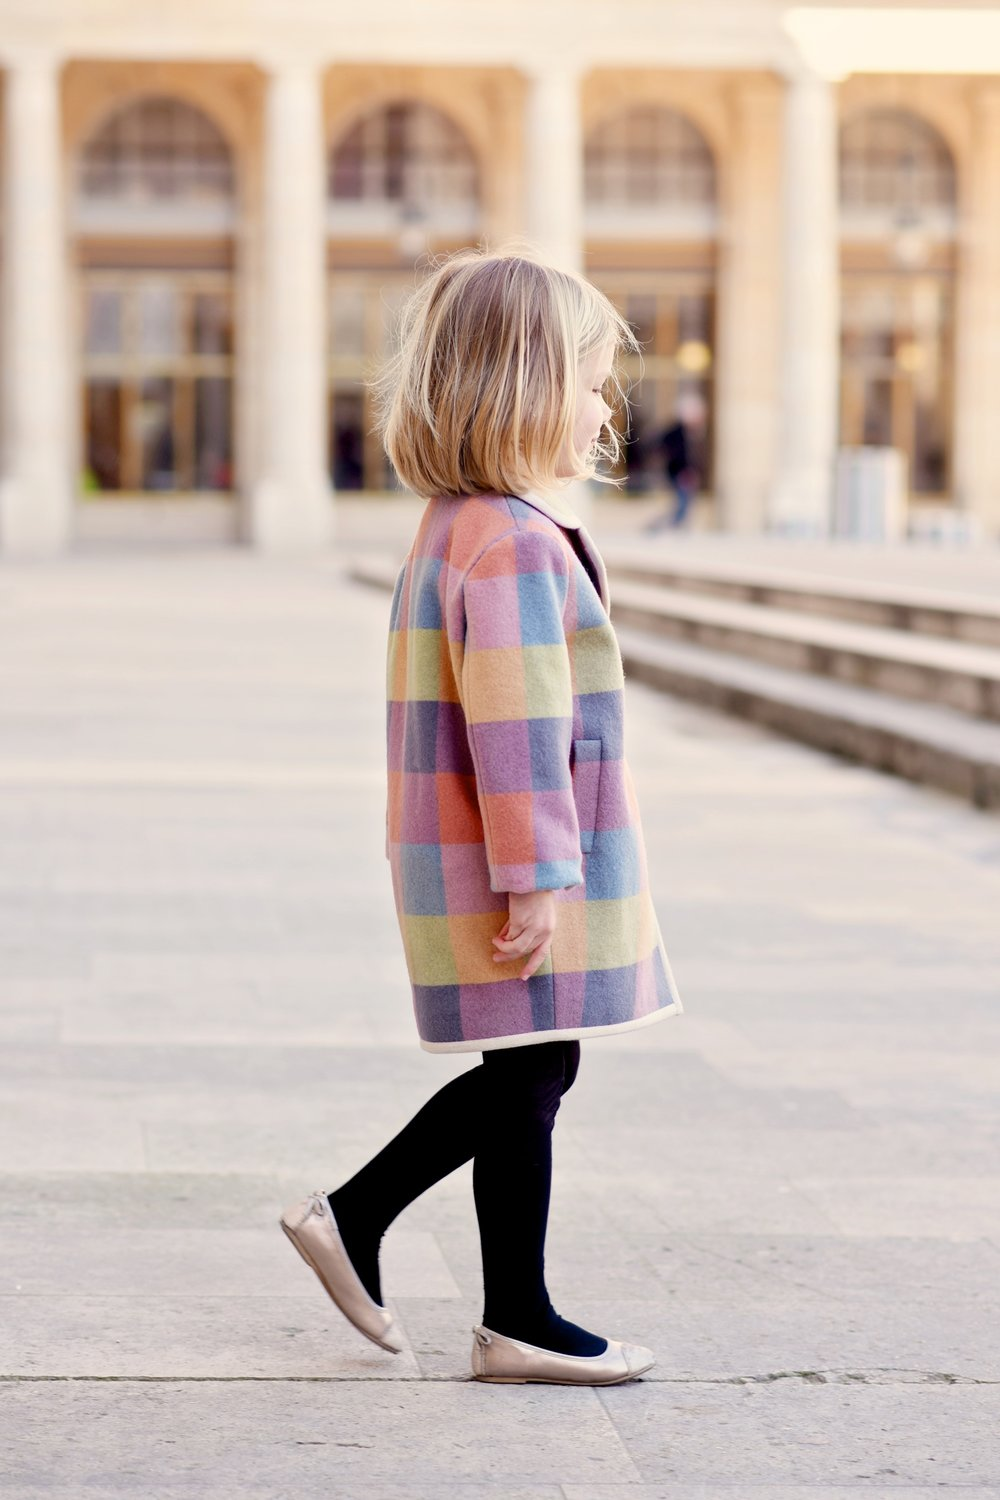 Enfant+Street+Style+by+Gina+Kim+Photography+mini+preen+coat.jpeg